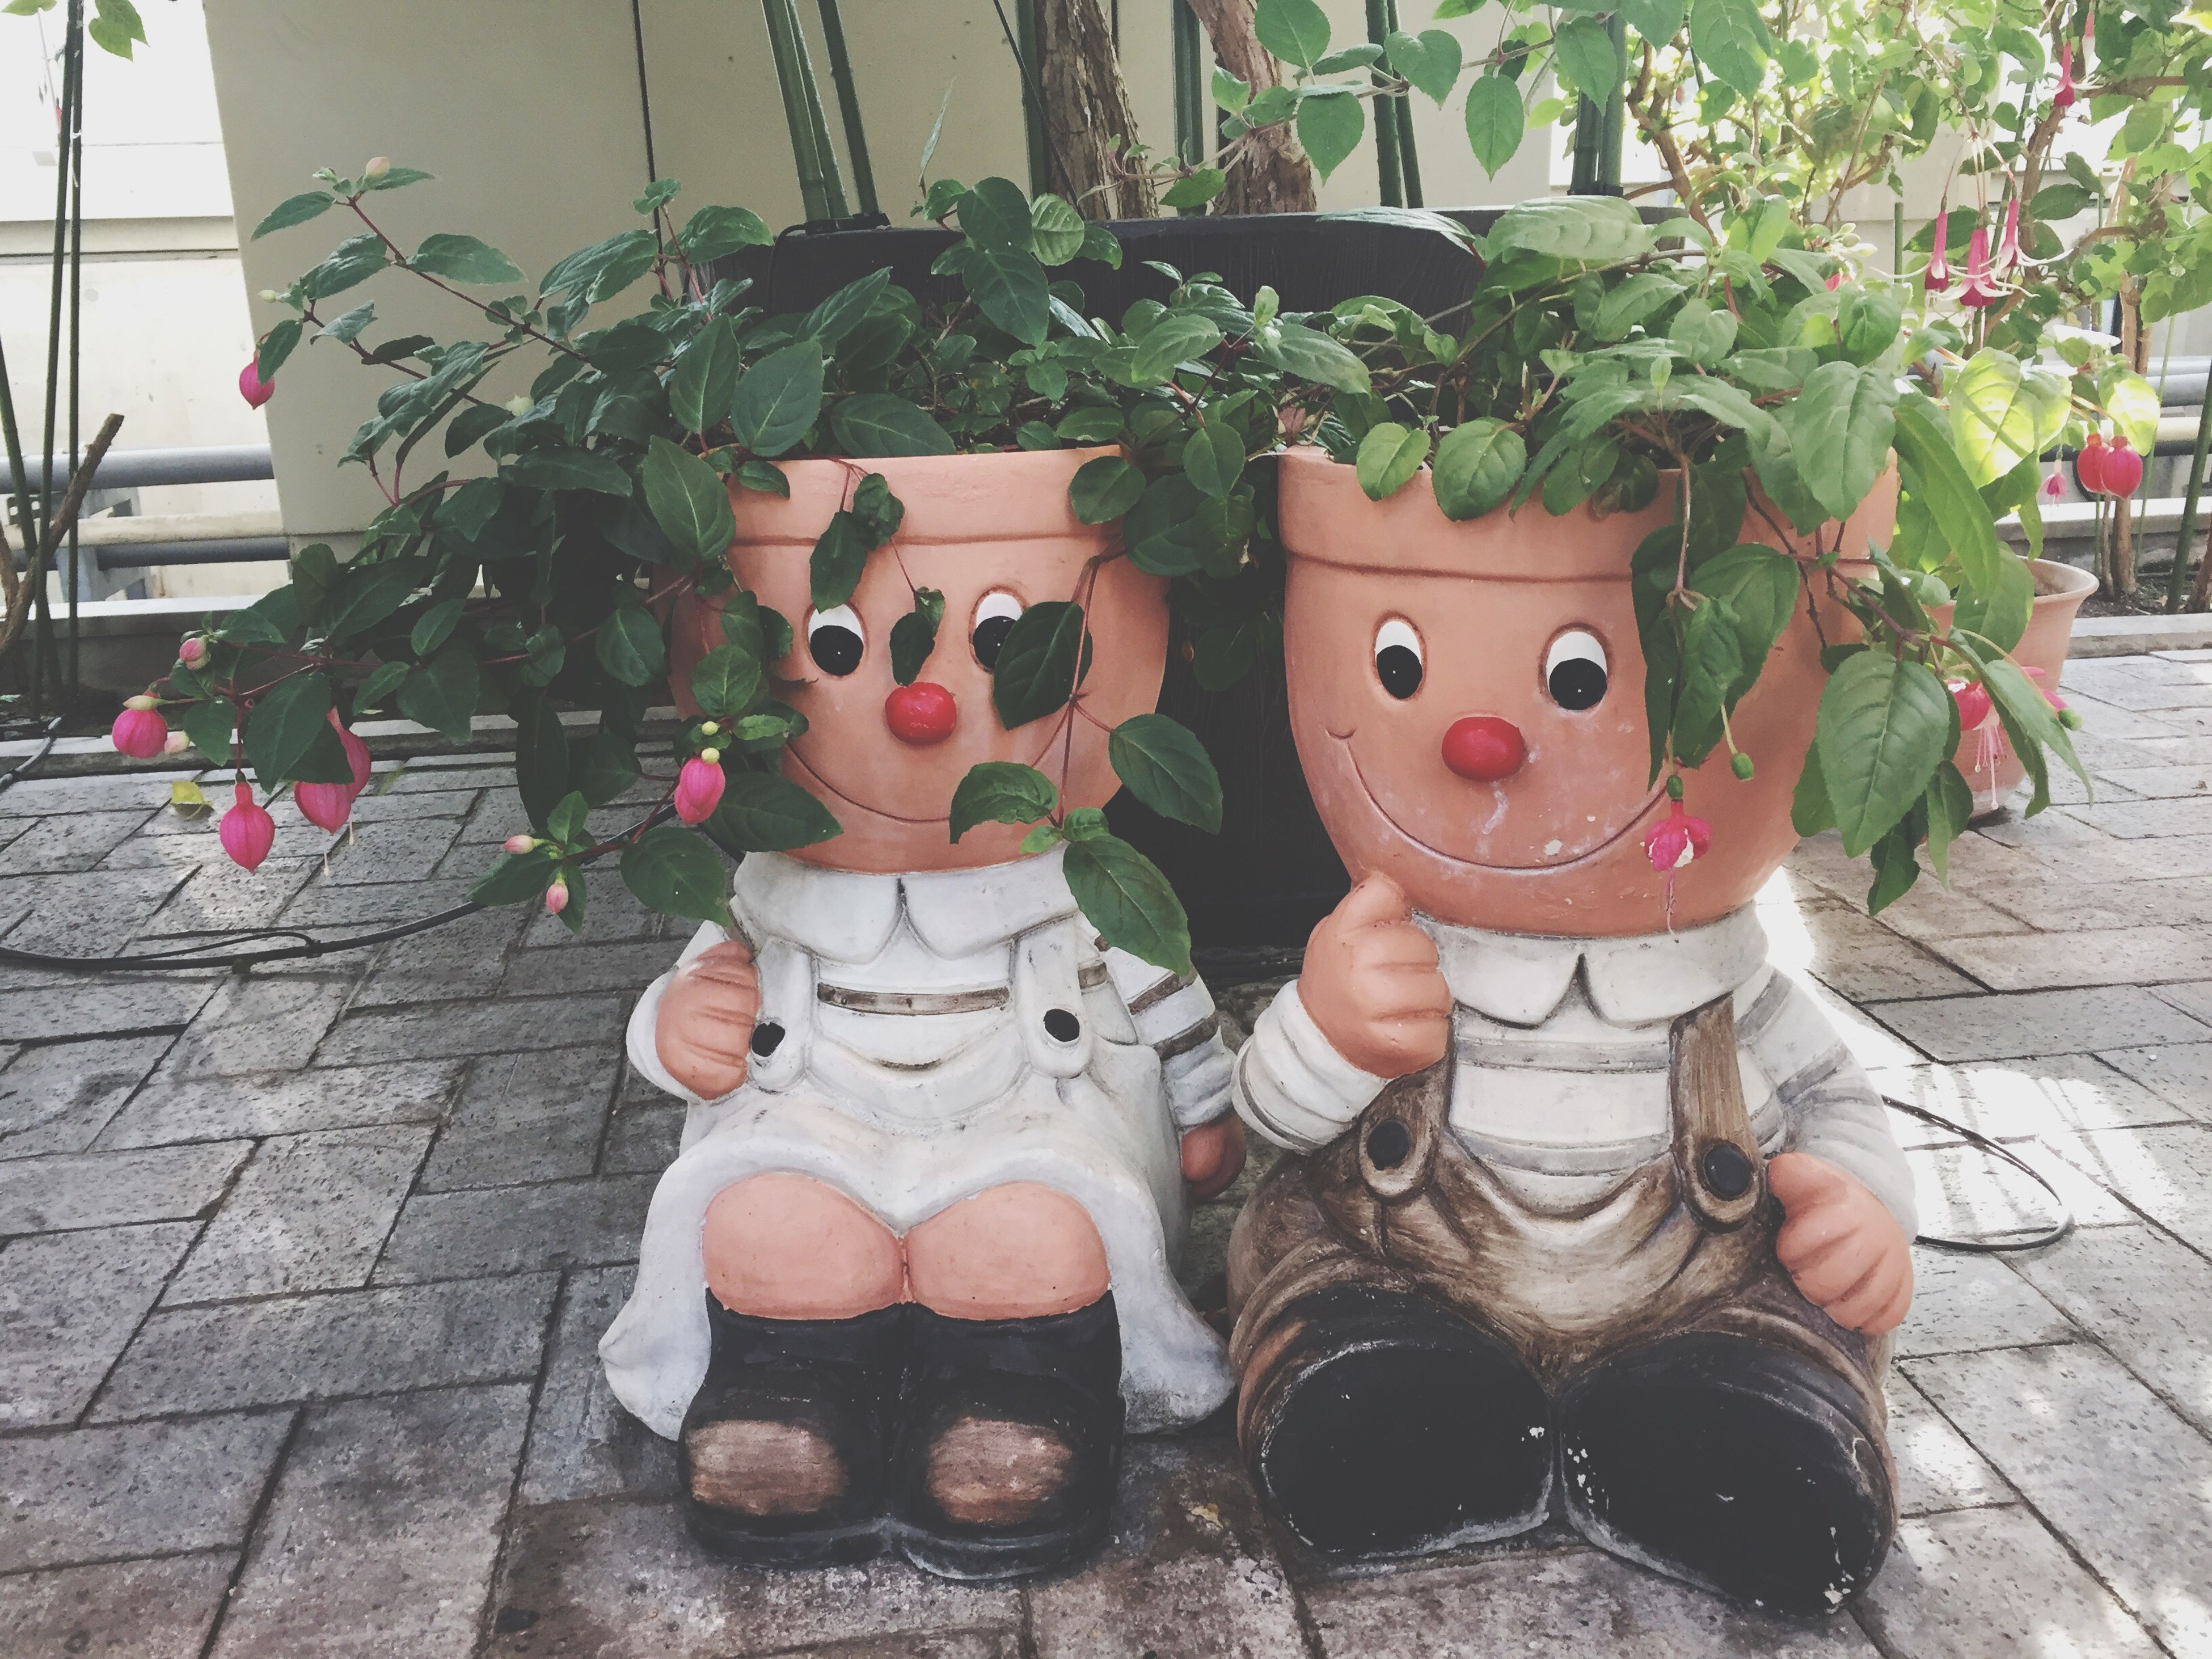 art and craft, human representation, hanging, no people, close-up, anthropomorphic face, nature, day, tree, outdoors